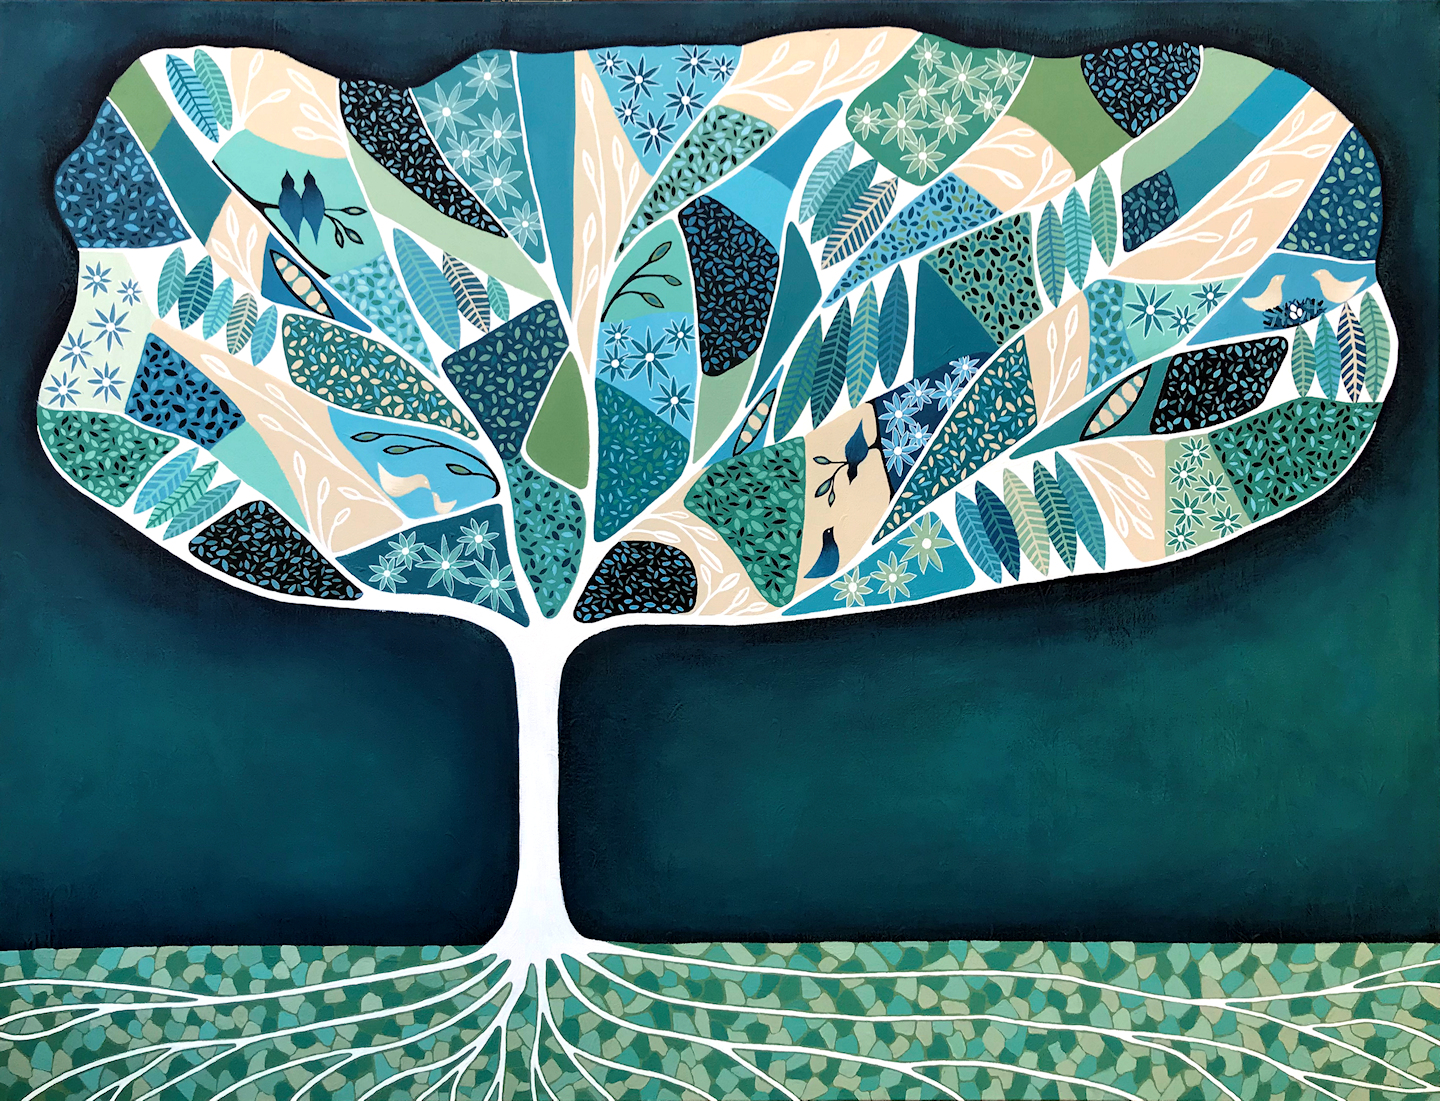 Once-Upon-A-Tree-by-Lisa-Frances-Judd72dpi